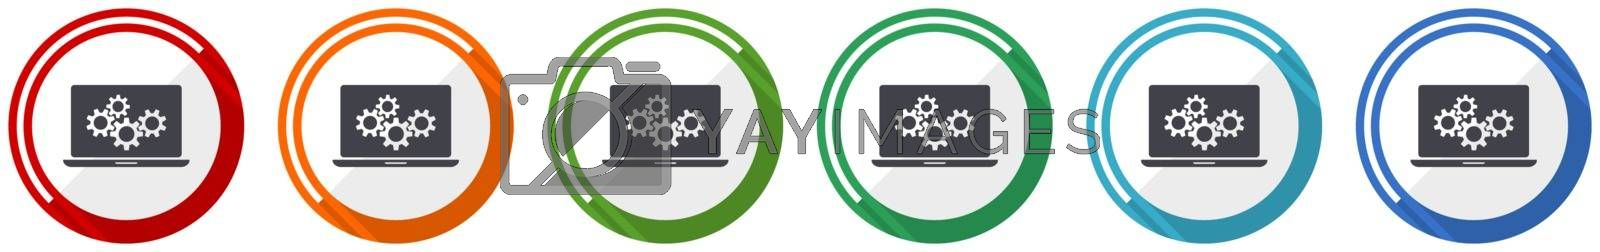 Laptop icon set, notebook, computer flat design vector illustration in 6 colors options for webdesign and mobile applications